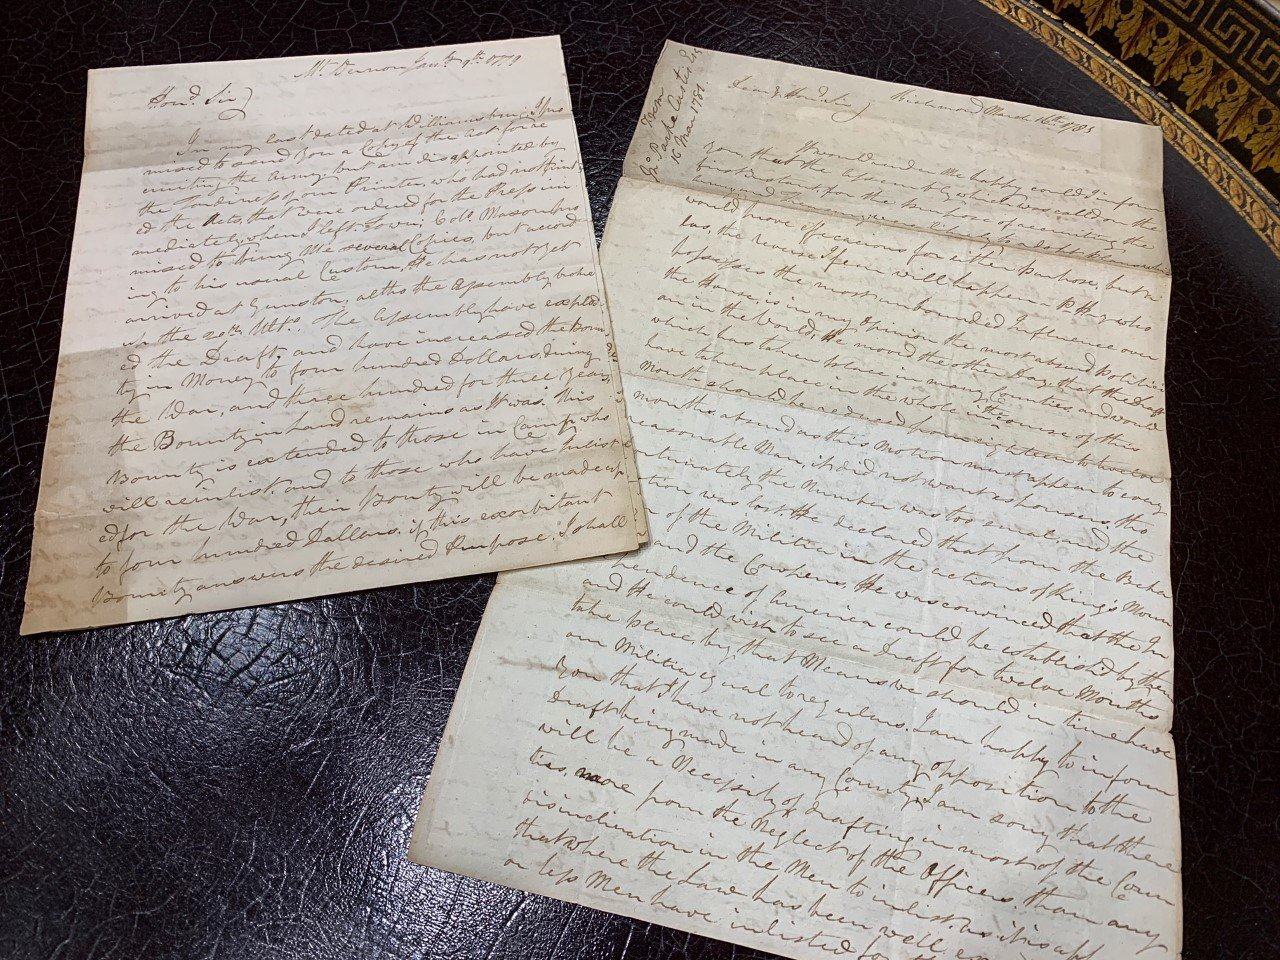 Historical Letters & Documents Hitting The Auction Block November 12th, 2020